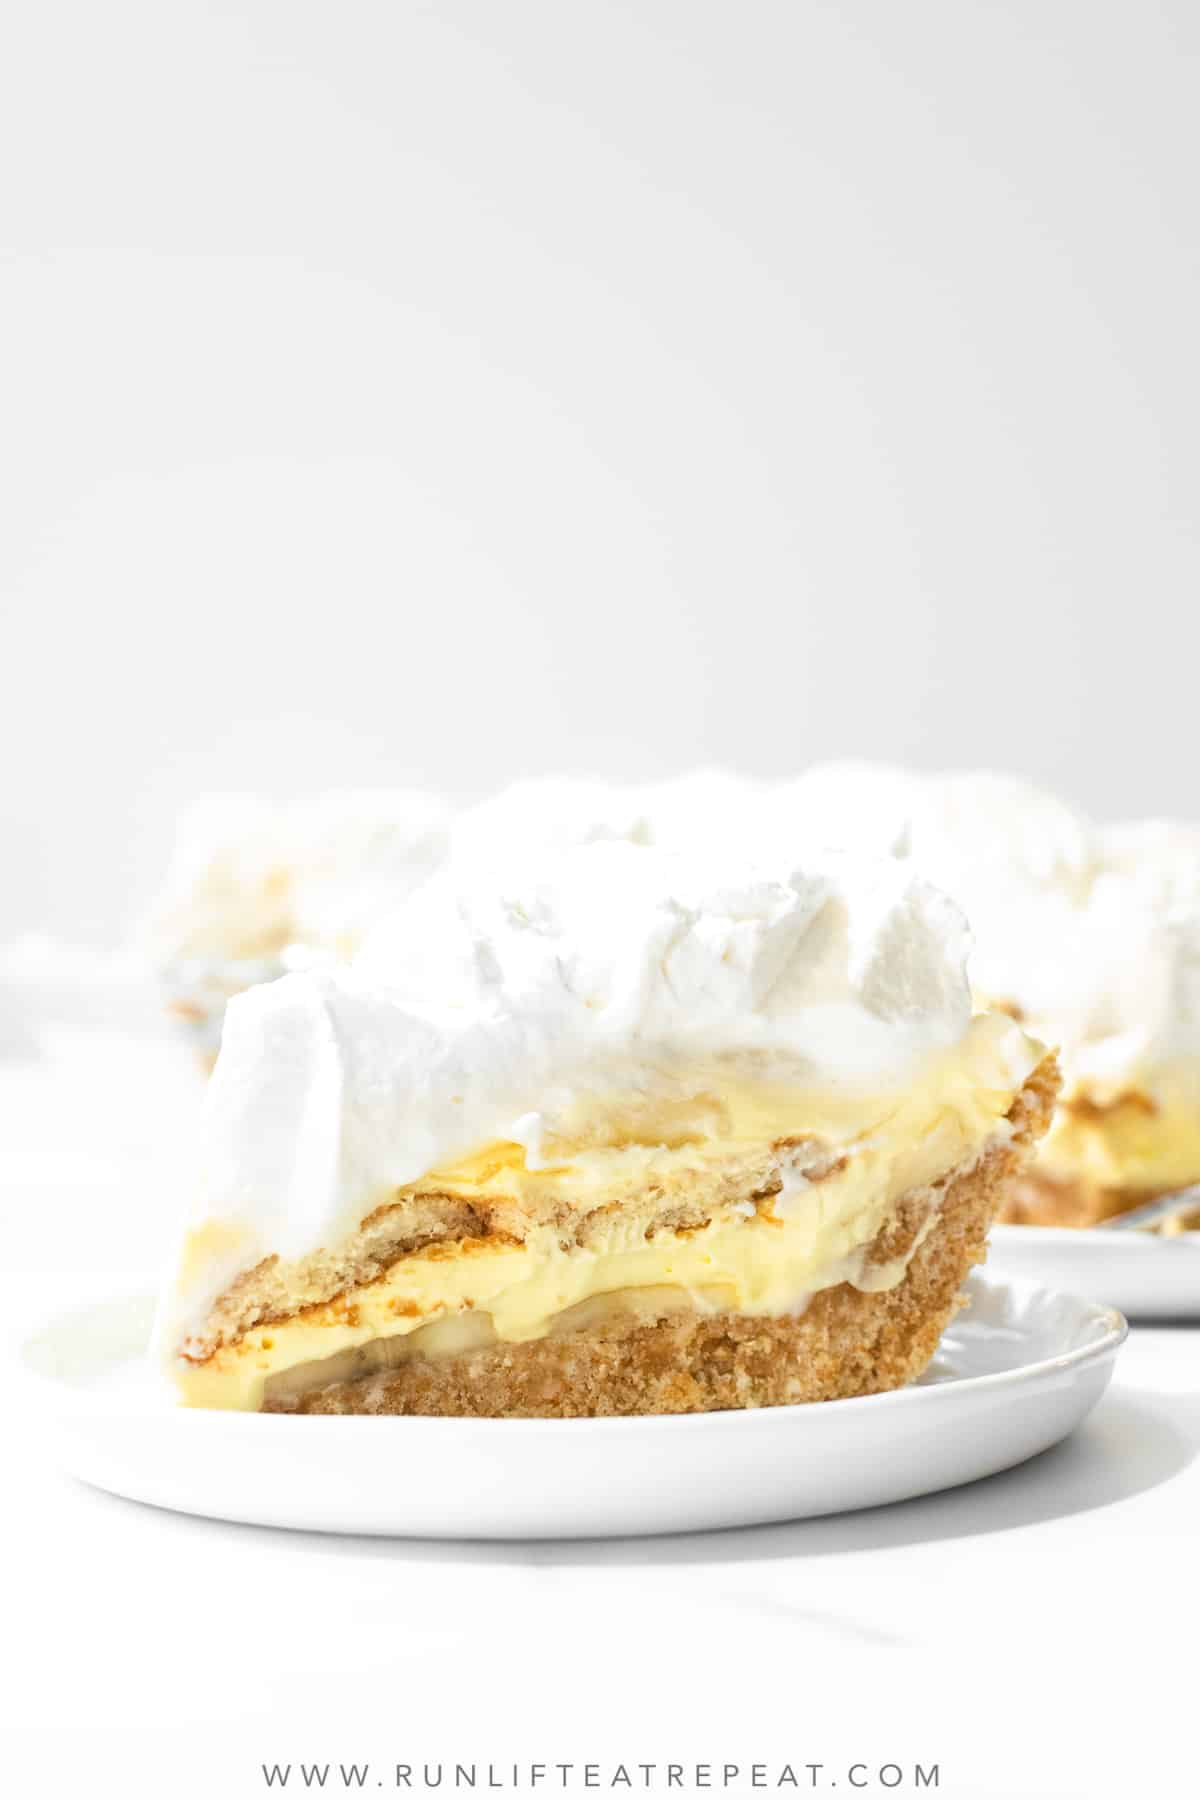 A single slice of banana pudding pie sits on a white serving plate in front of the rest of the pie.